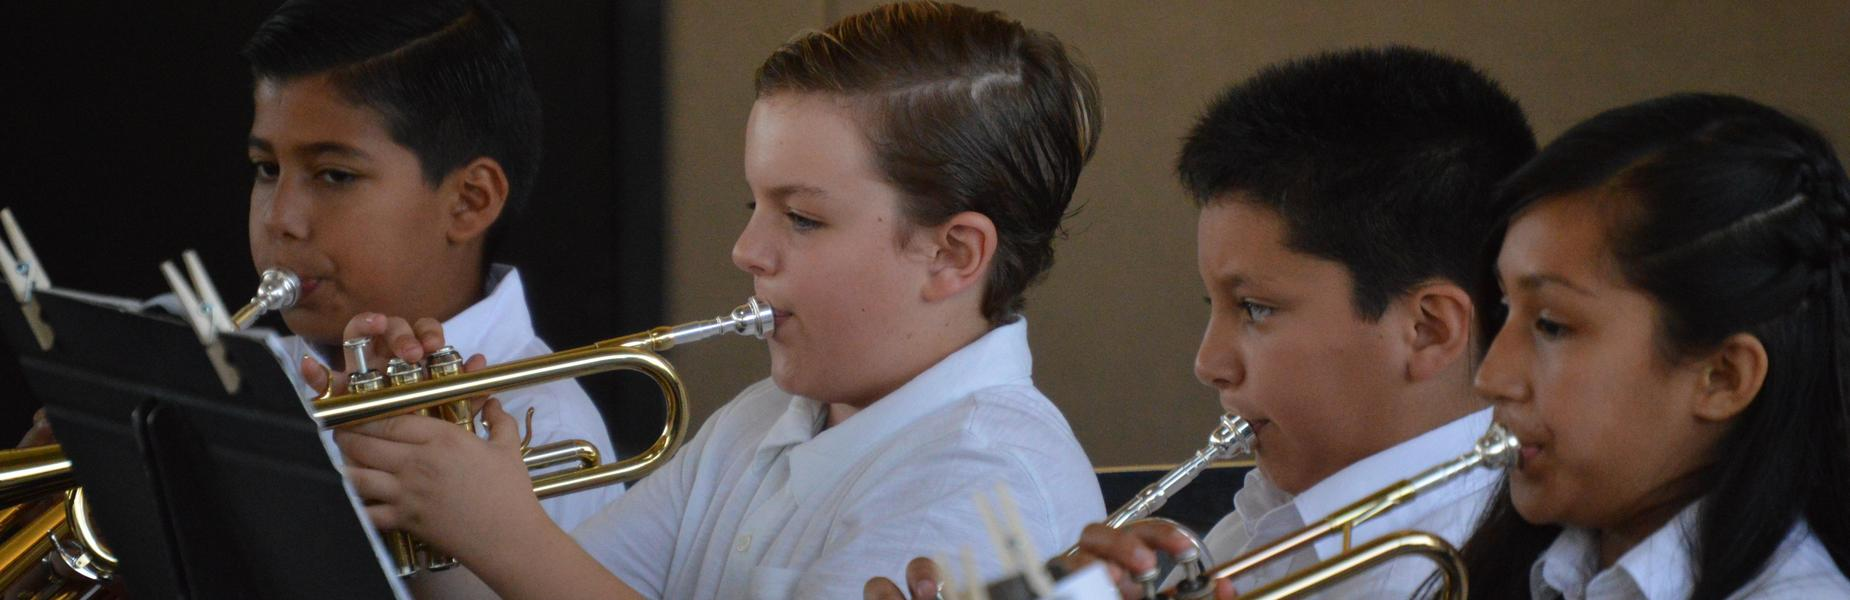 Elementary Band Trumpet Players Performing